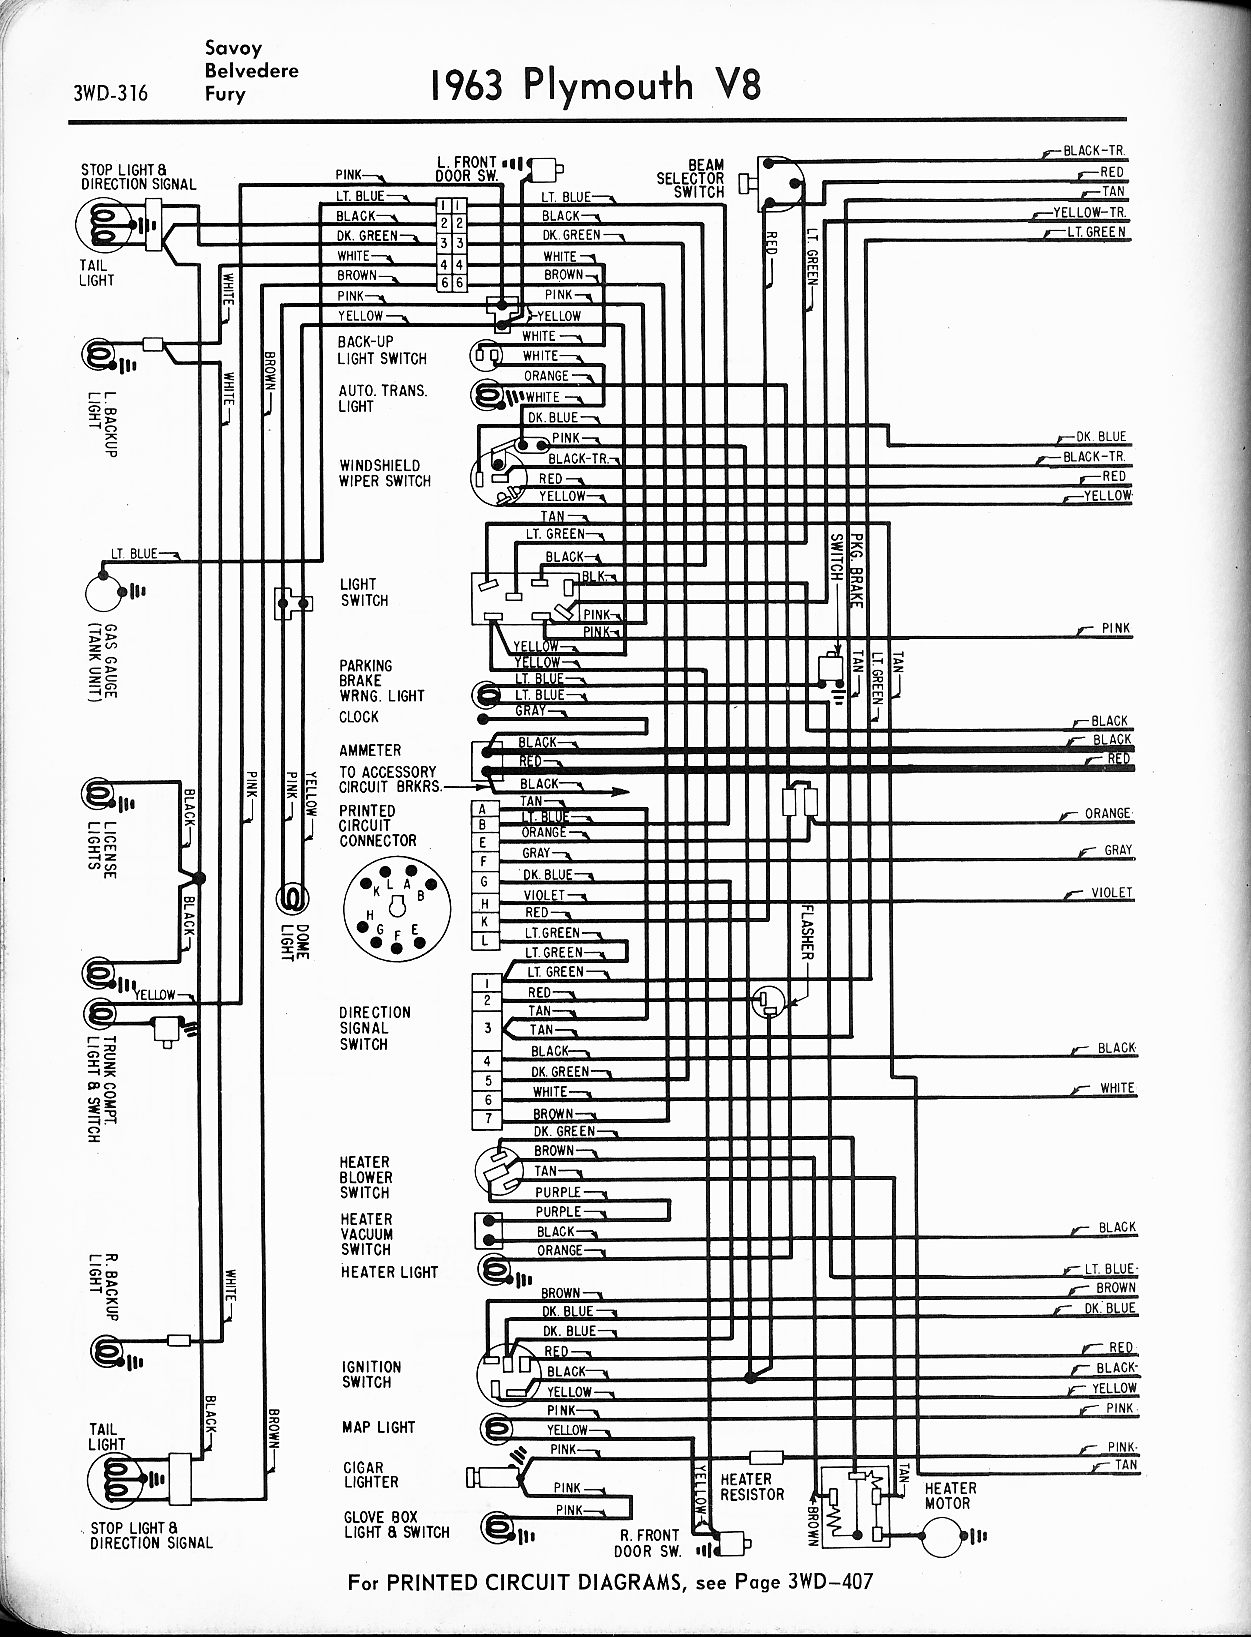 [WQZT_9871]  63 Falcon Wiring Diagram 1999 Harley Softail Wiring Harness Complete -  naruto.sardaracomunitaospitale.it | 1966 Falcon Wiring Diagrams |  | Wiring Diagram and Schematics